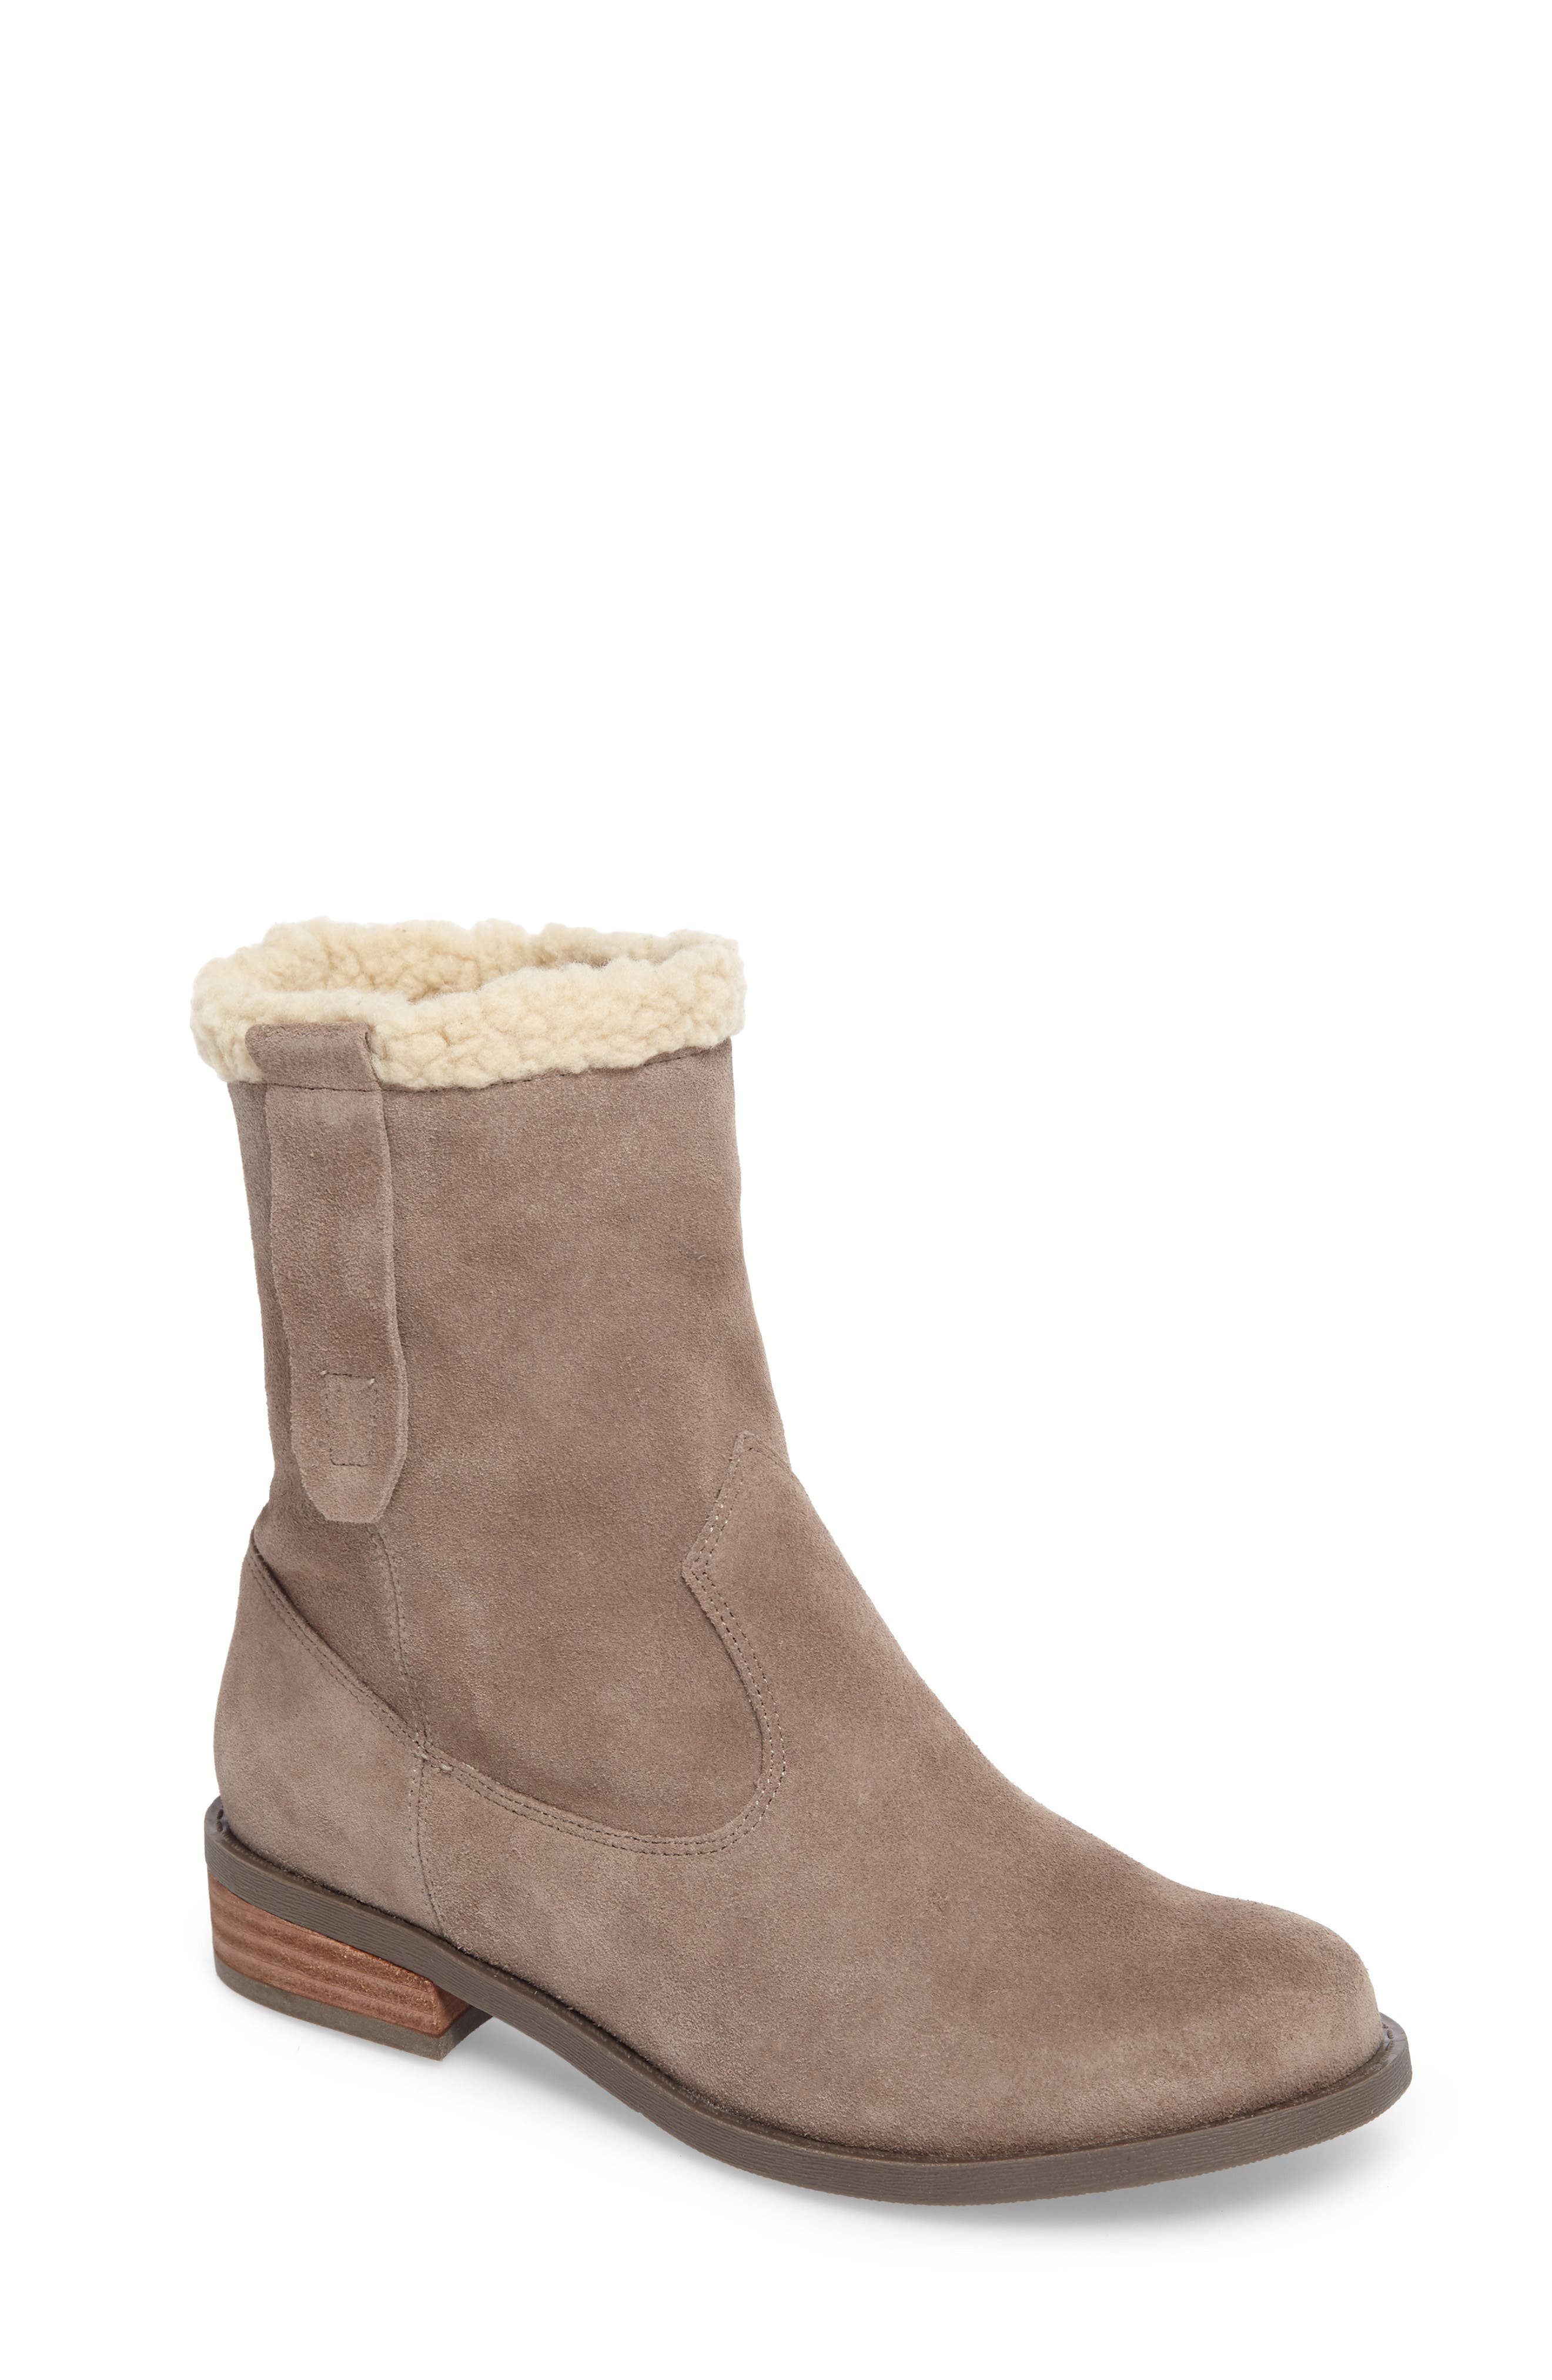 SOLE SOCIETY Verona Faux Shearling Boot, Main, color, DARK MUSHROOM SUEDE